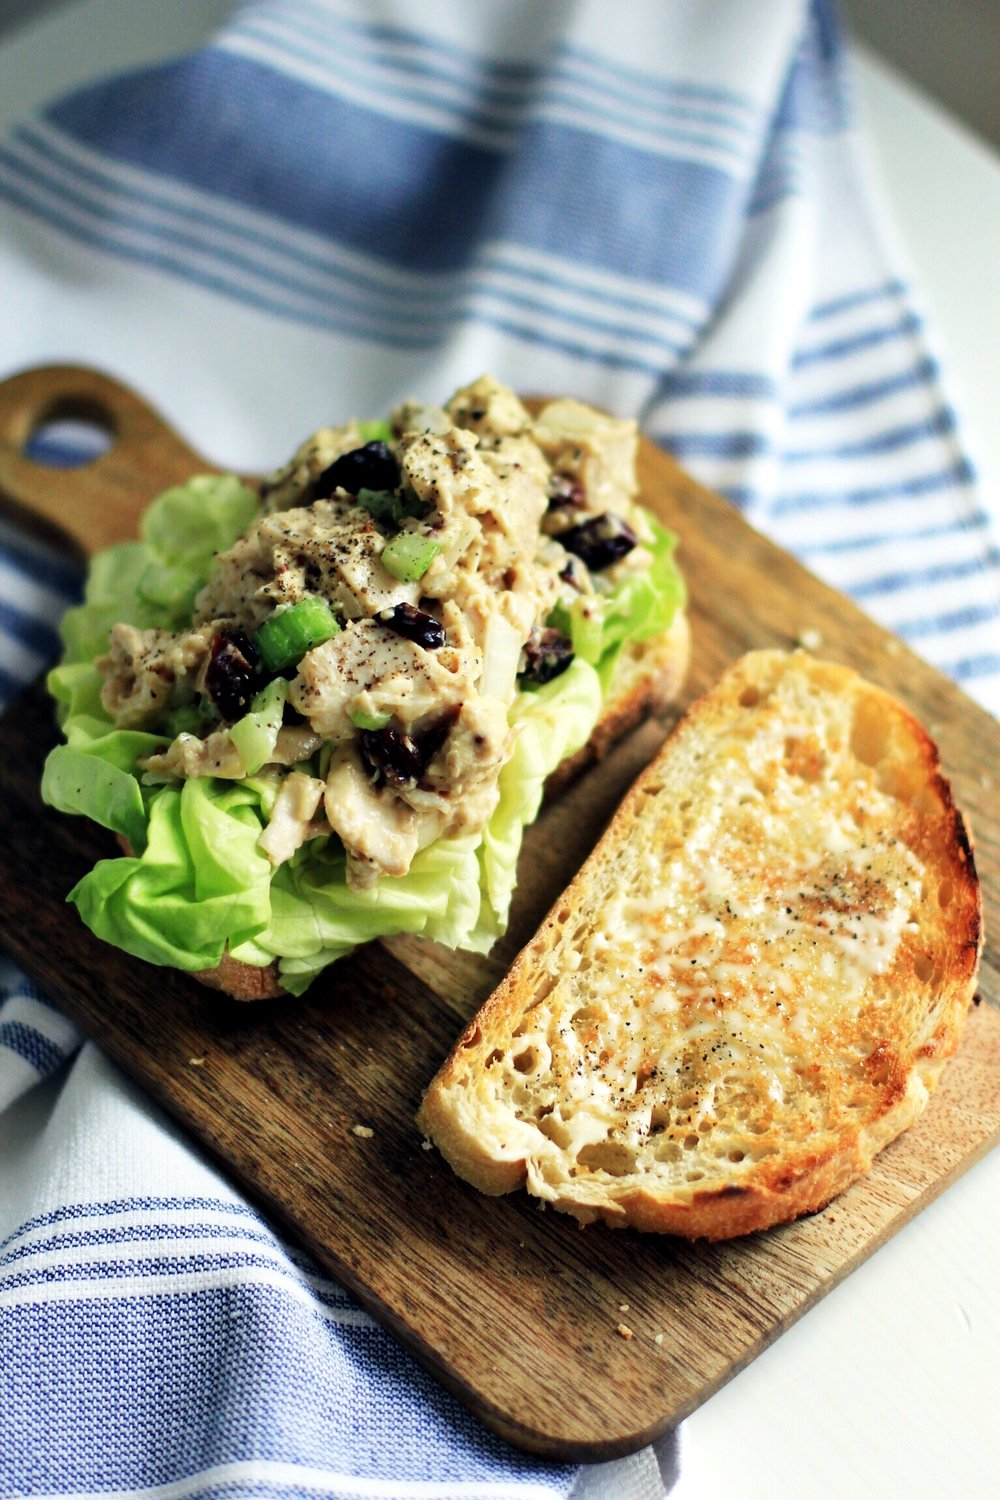 Honey Dijon chicken salad with dried cherries on sourdough - The Pastiche